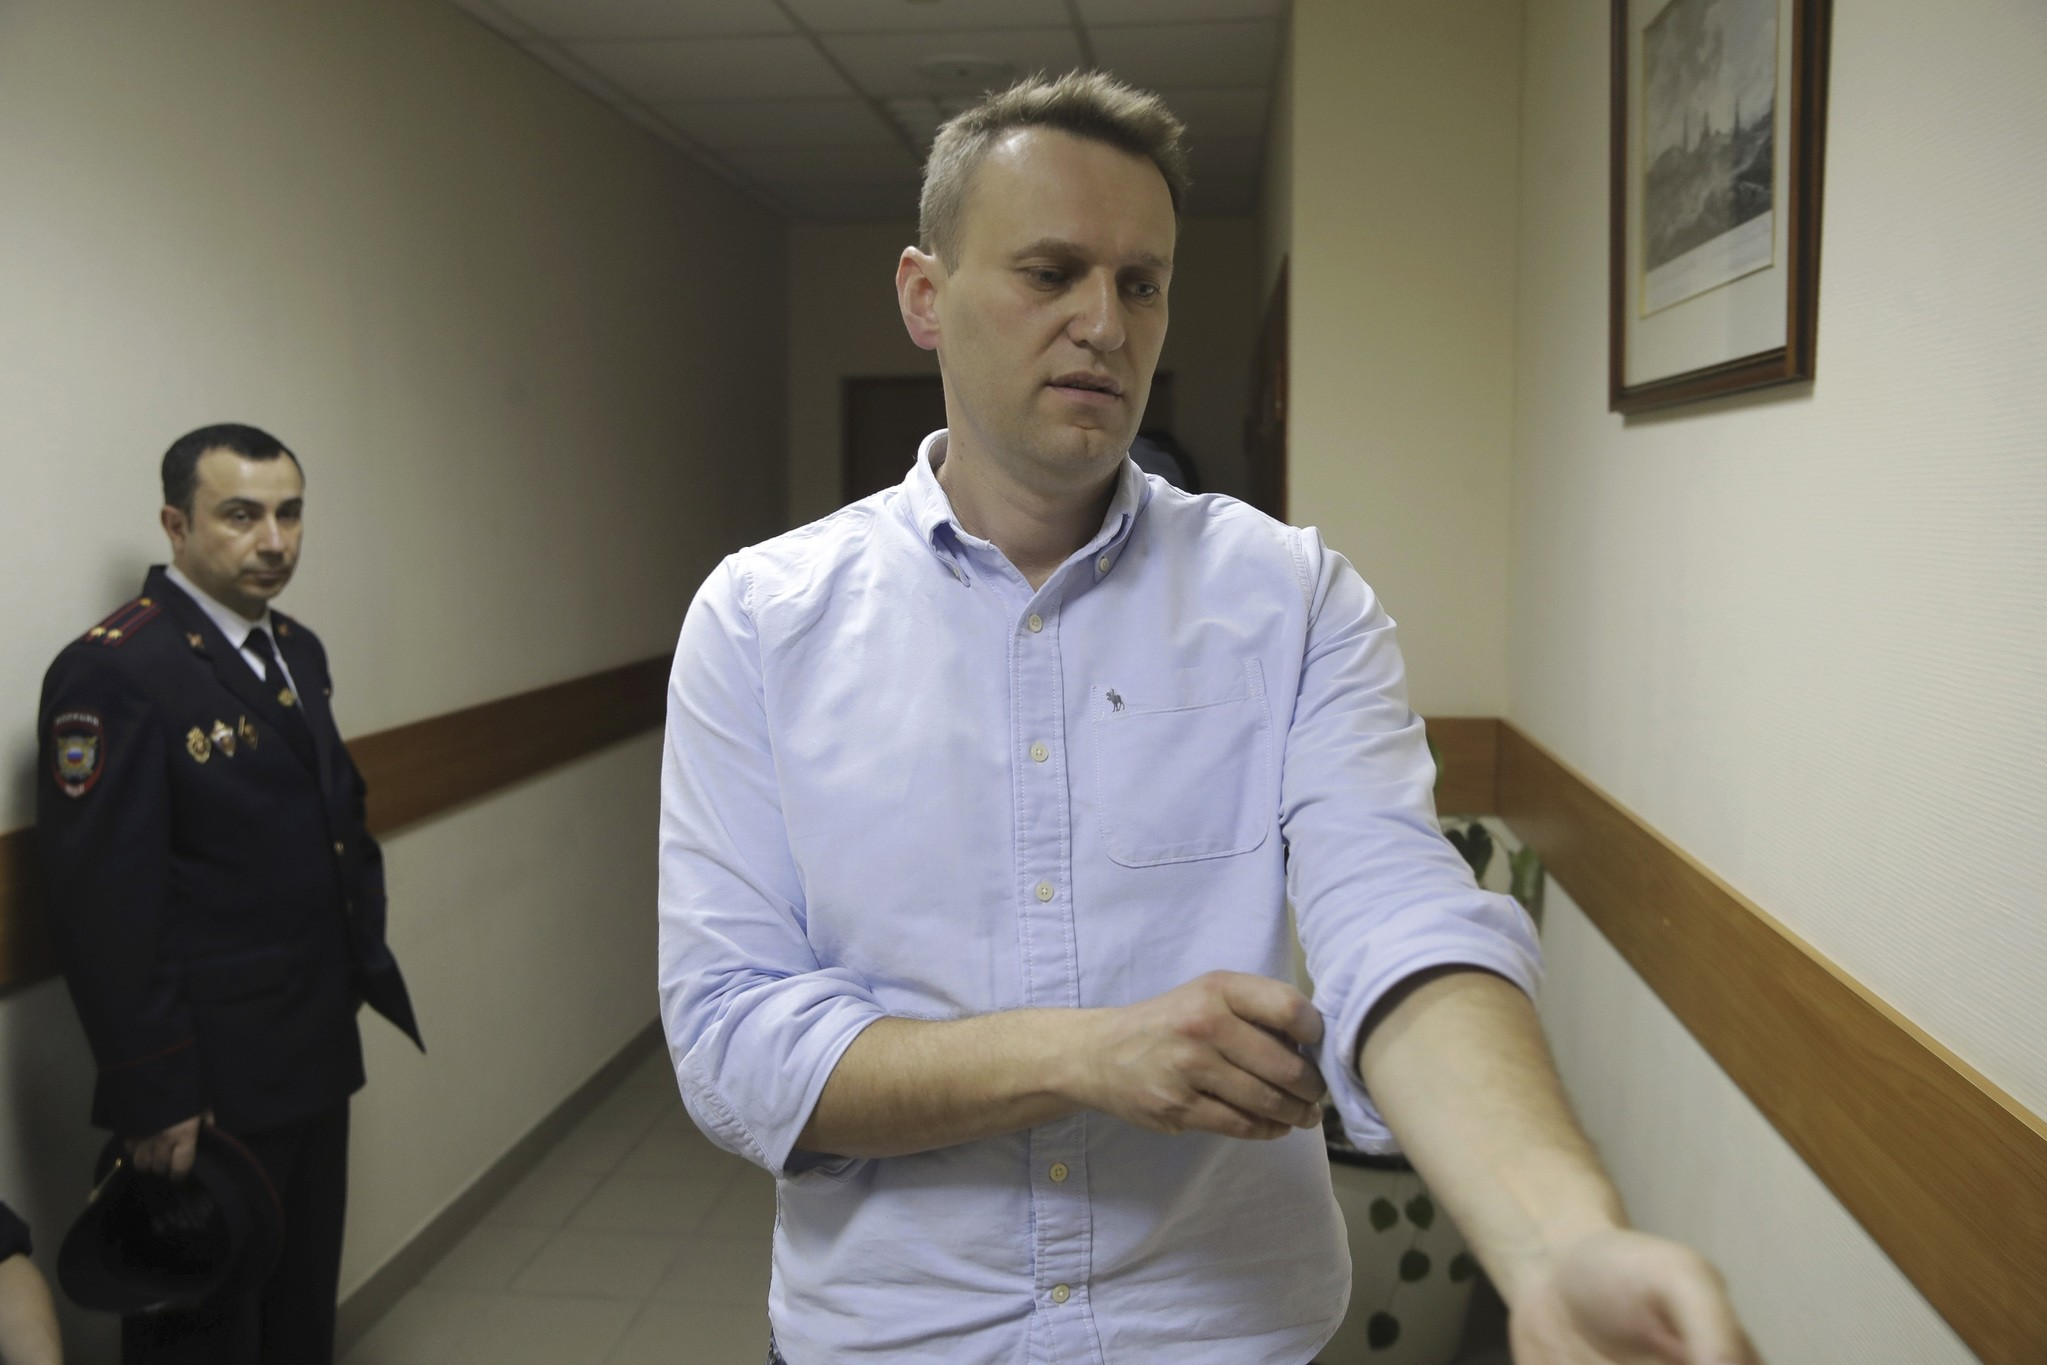 Russian opposition leader Alexei Navalny walks before hearing in a court in Moscow, Russia, on Monday, June 12, 2017. (AP Photo)